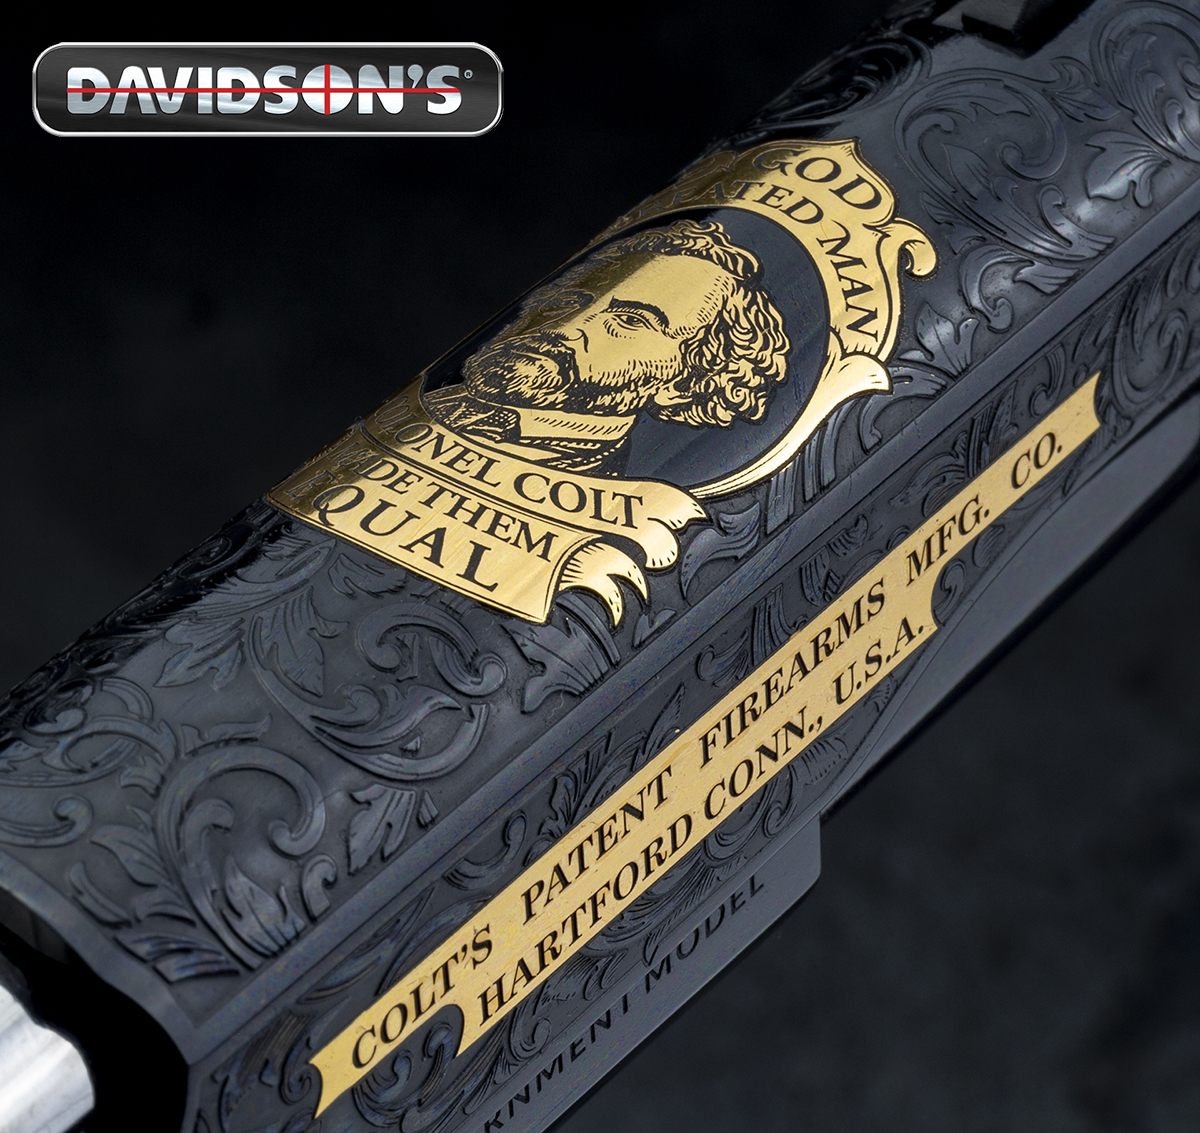 This 1911's intricate metalwork features Samuel Colt's face.